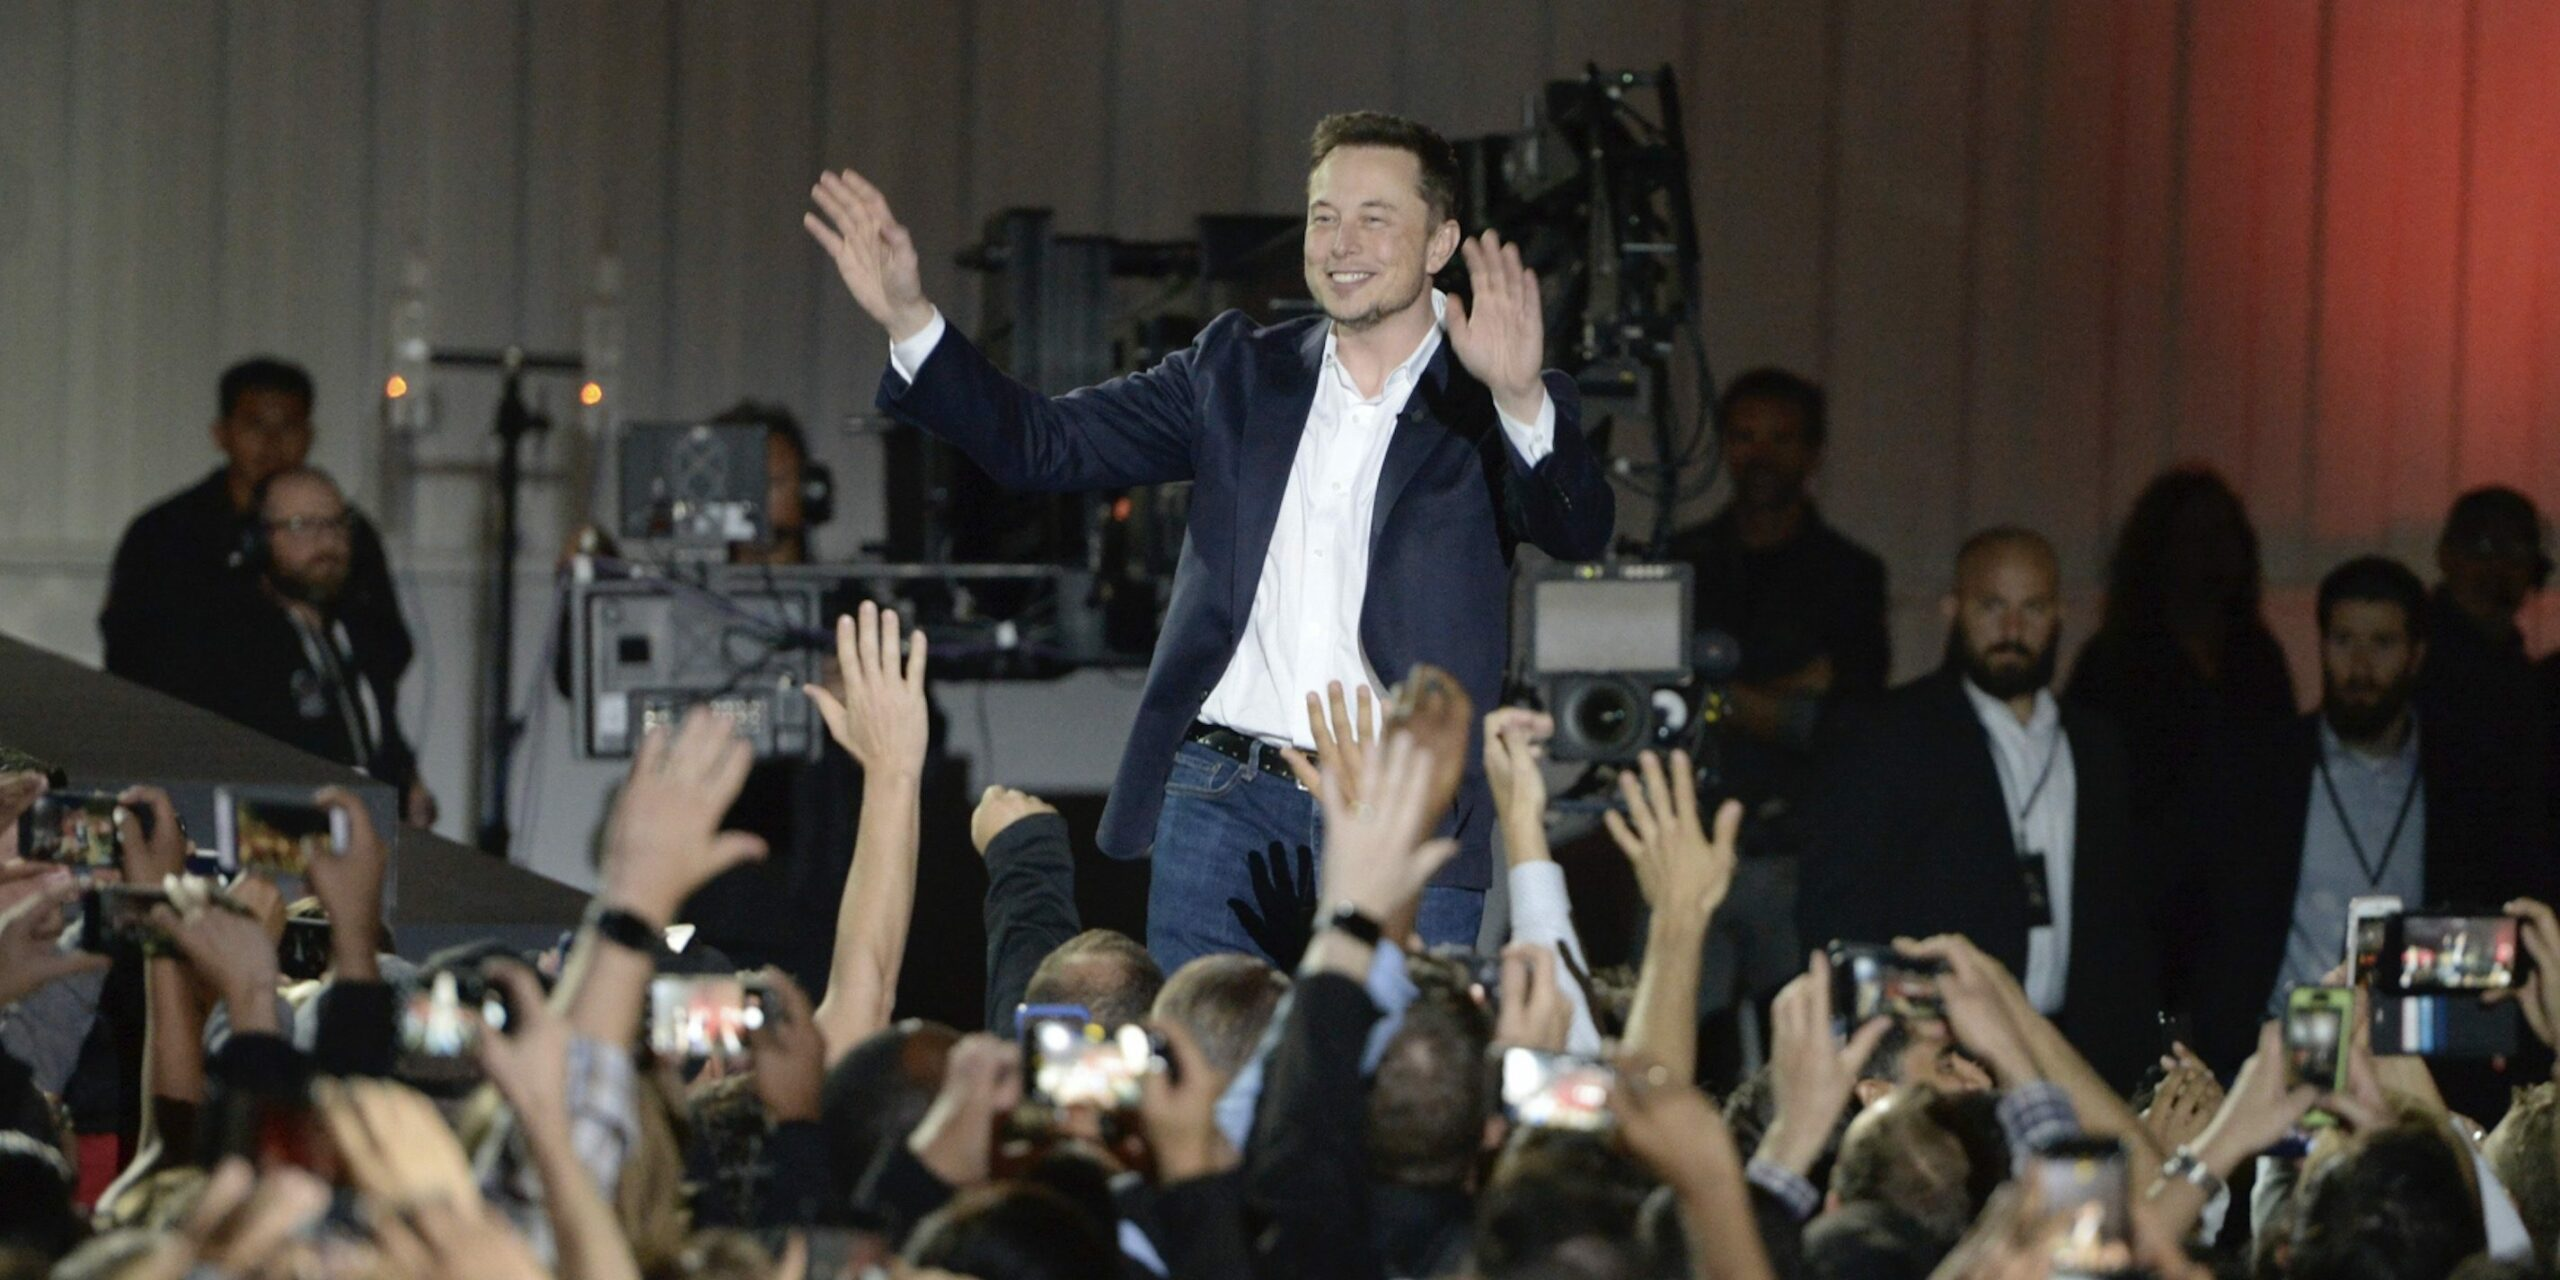 Tesla (TSLA): Elon Musk secures more shares to finance SpaceX's Mars colonization system